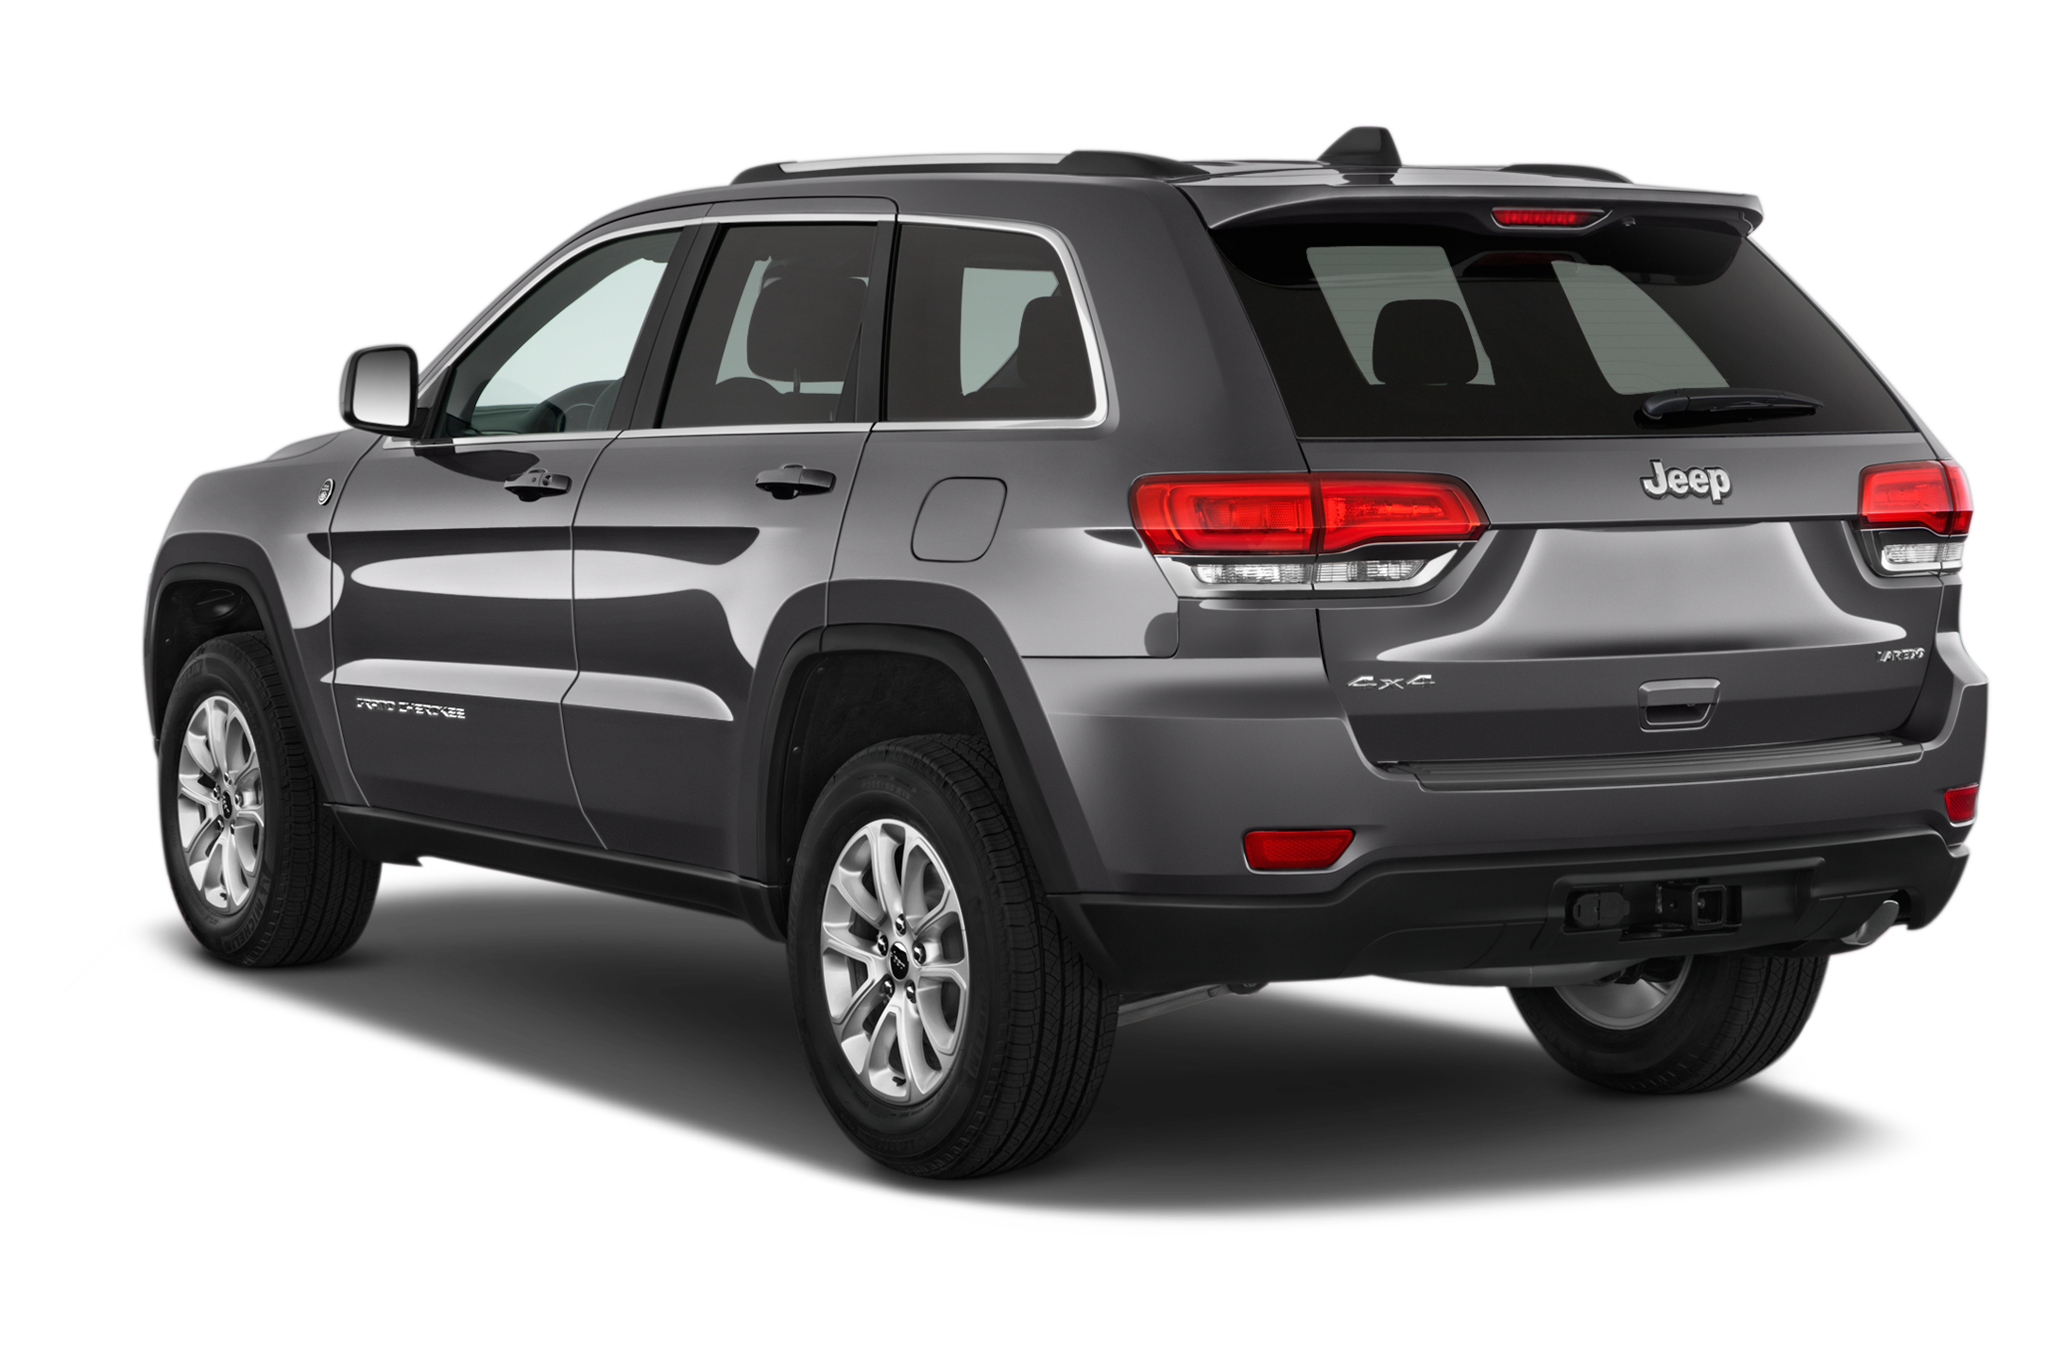 Used Pre Owned Drive Four Wheel Jeep Cherokee Sport Inventory Grand In Certified Laredo Utility